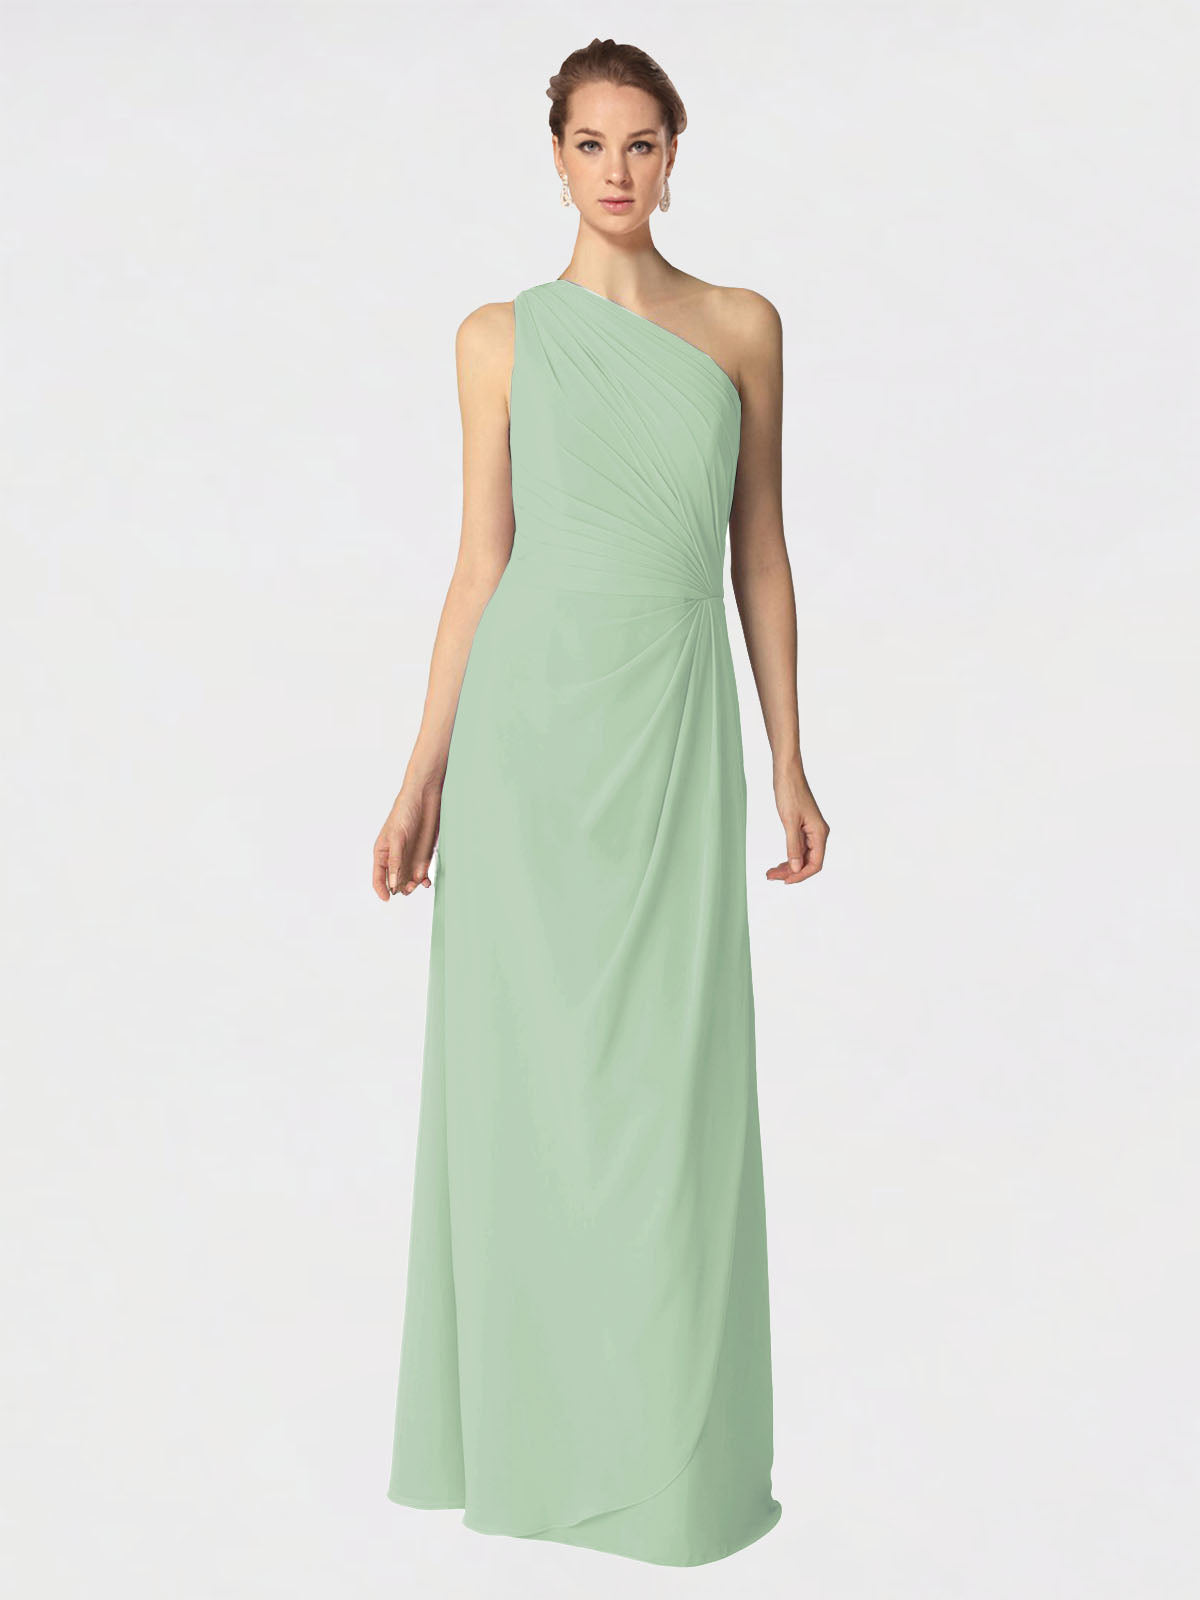 Long A-Line One Shoulder Sleeveless Sage Chiffon Bridesmaid Dress Aurora